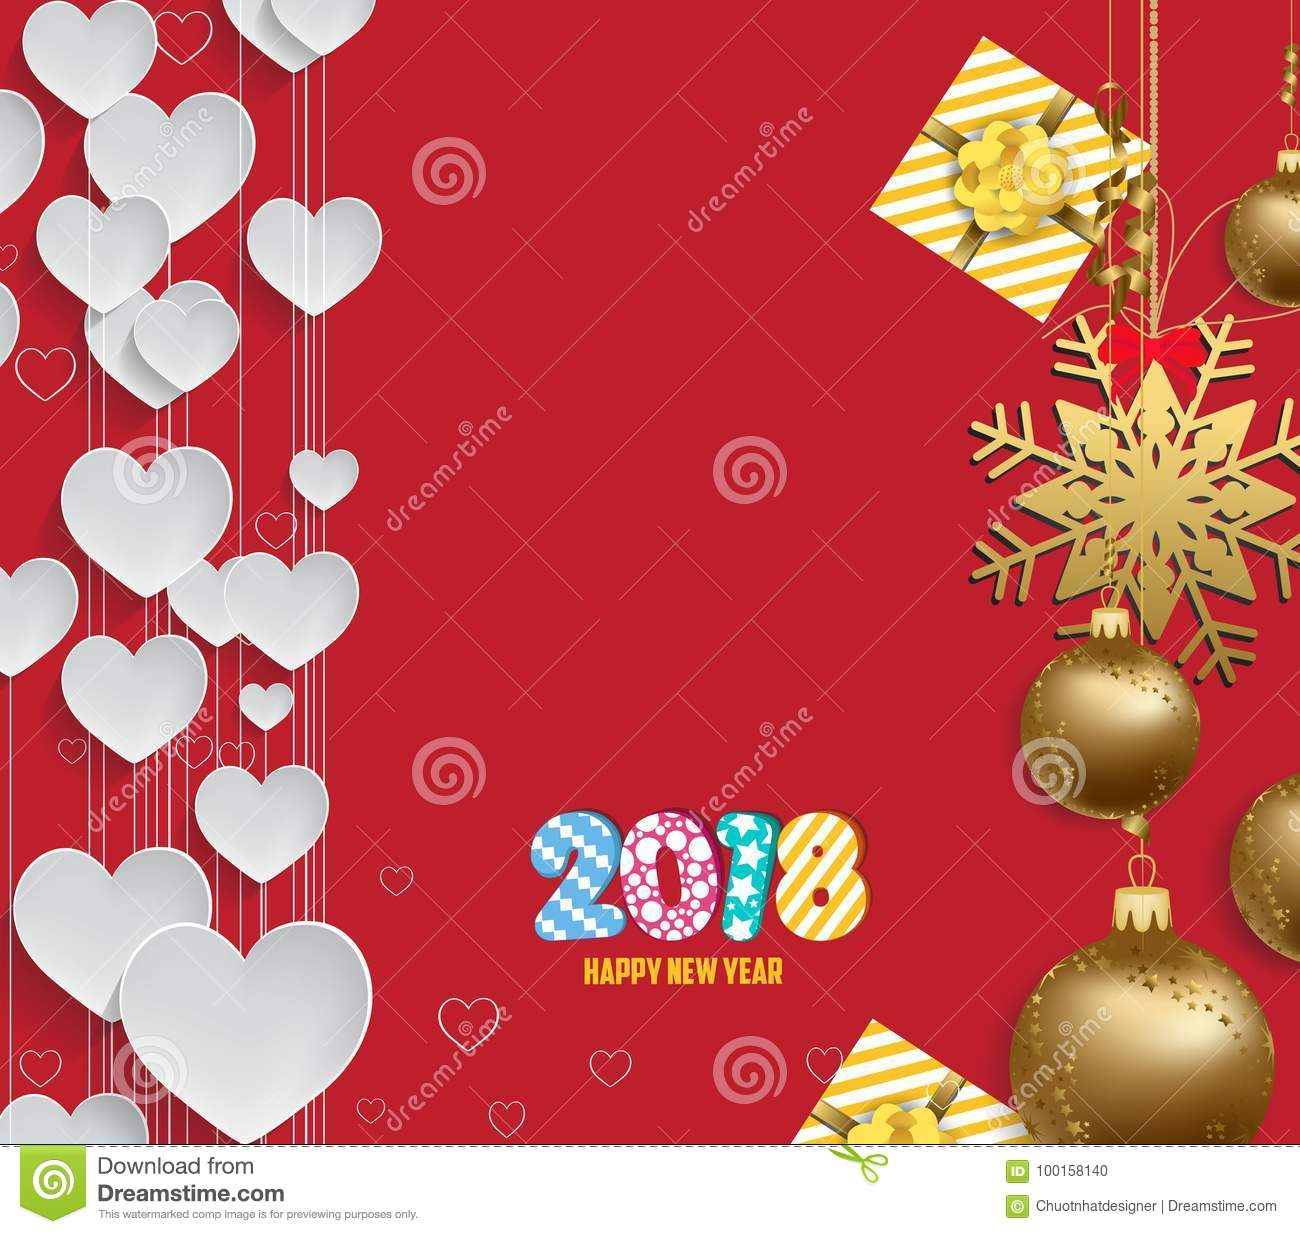 Vector illustration of christmas 2018 heart background with christmas balls gold